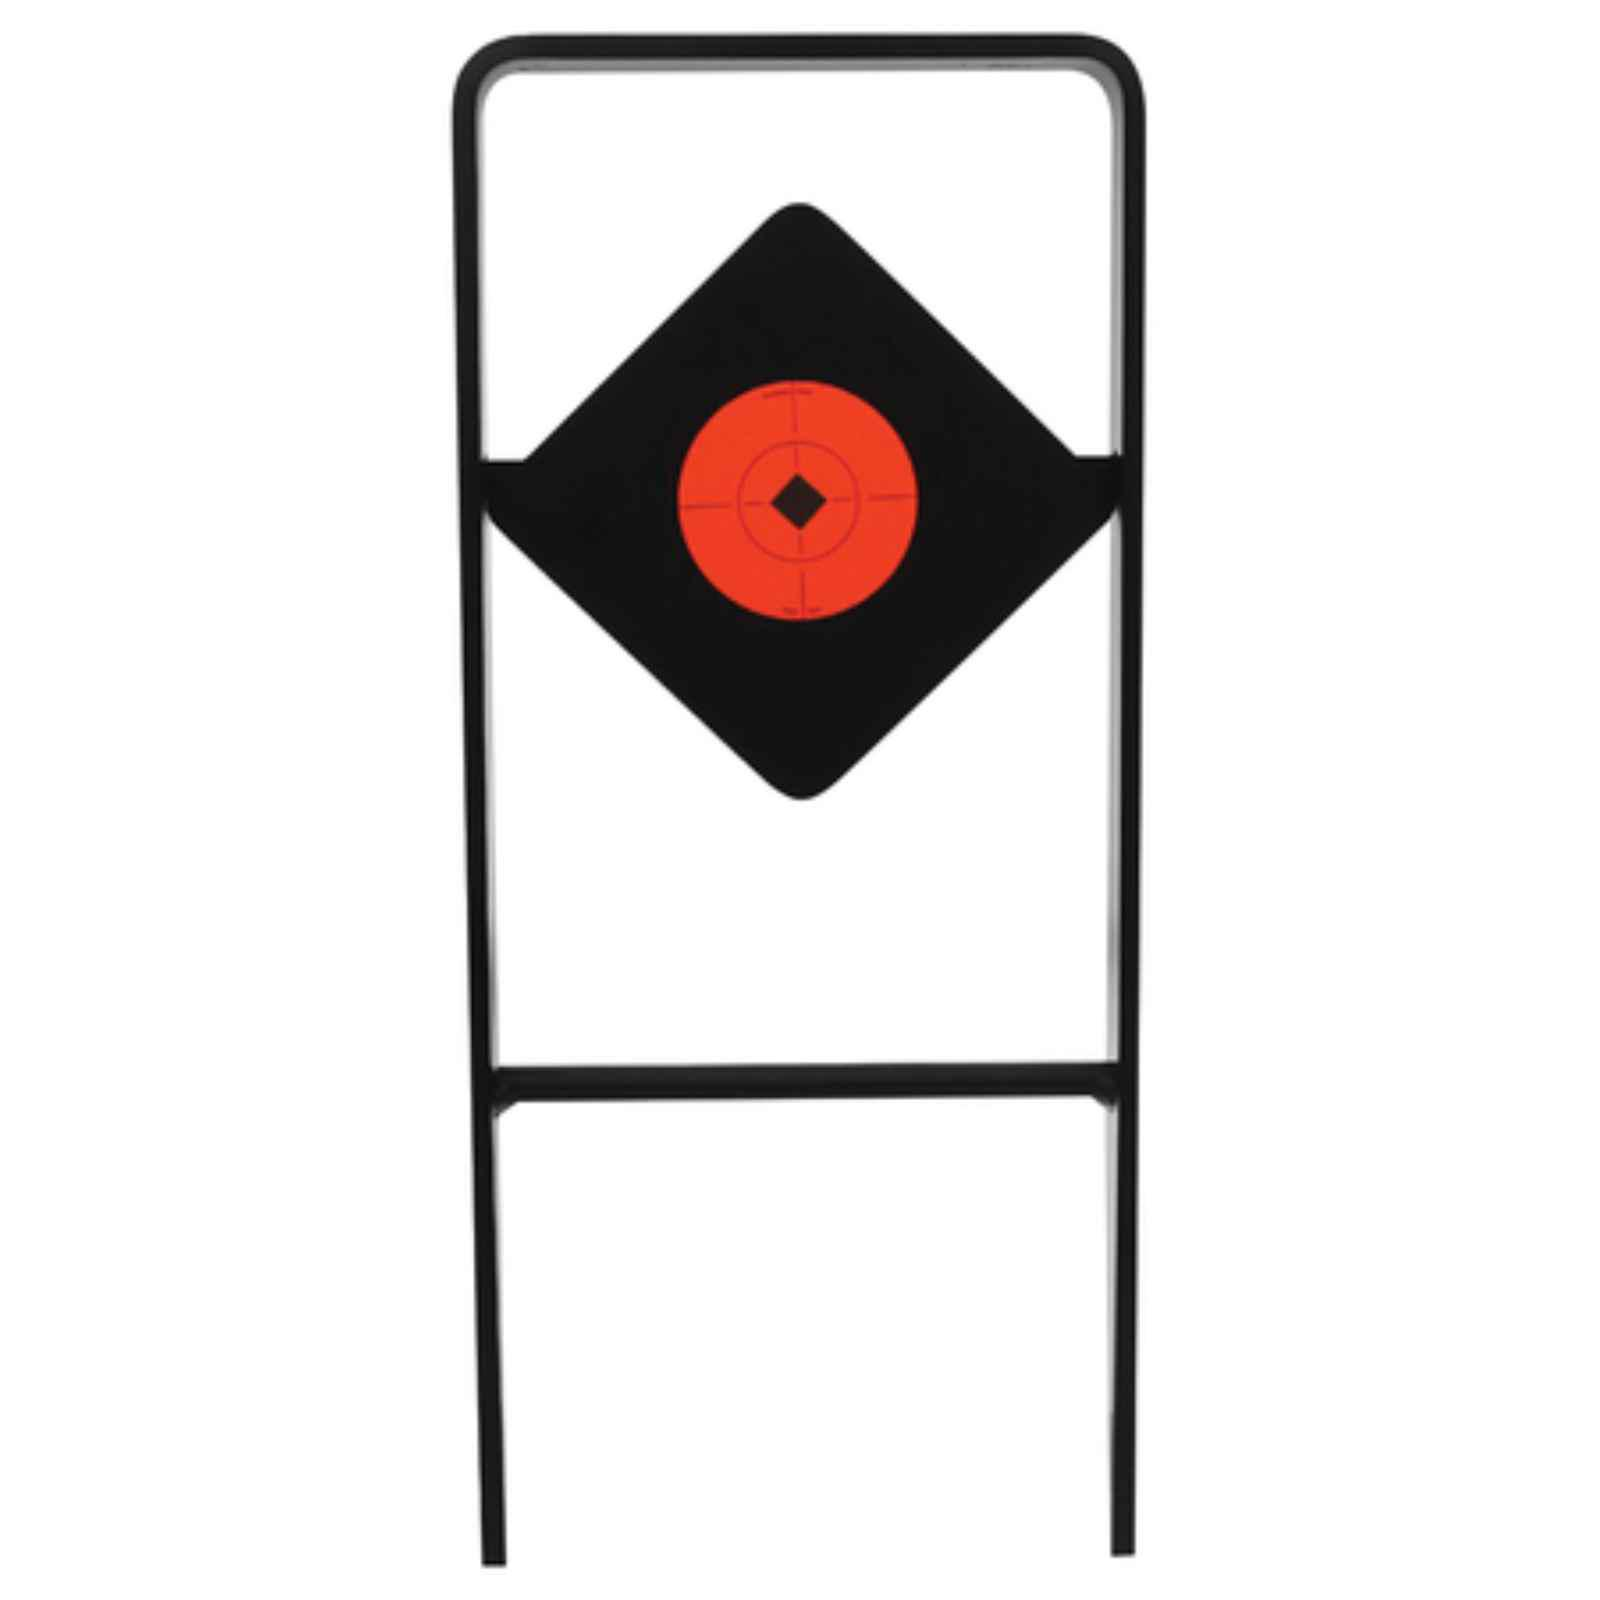 "USA World of Targets Ace of Diamonds Centerfire Spinning Target 1 2"" AR500 by Birchwood Casey"